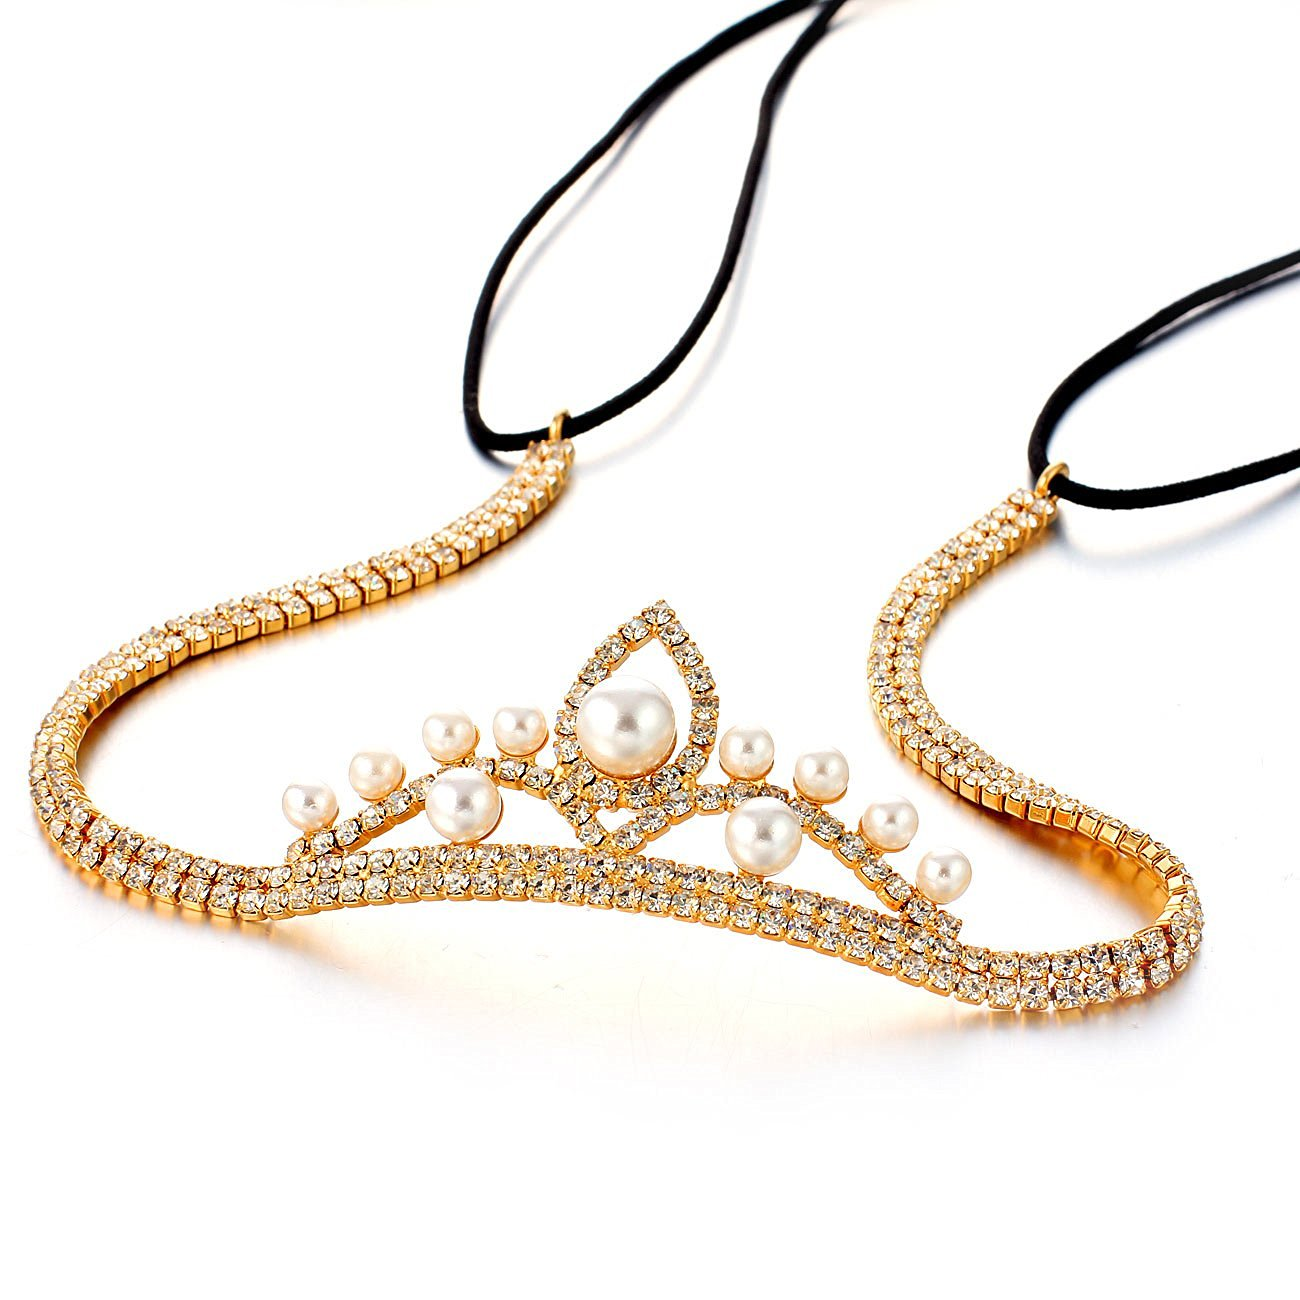 b775b7296 Get Quotations · Janeo Genuine Swarovski Crystal Elements Hair Band in 14k  Gold Plating. A Real Stunning &